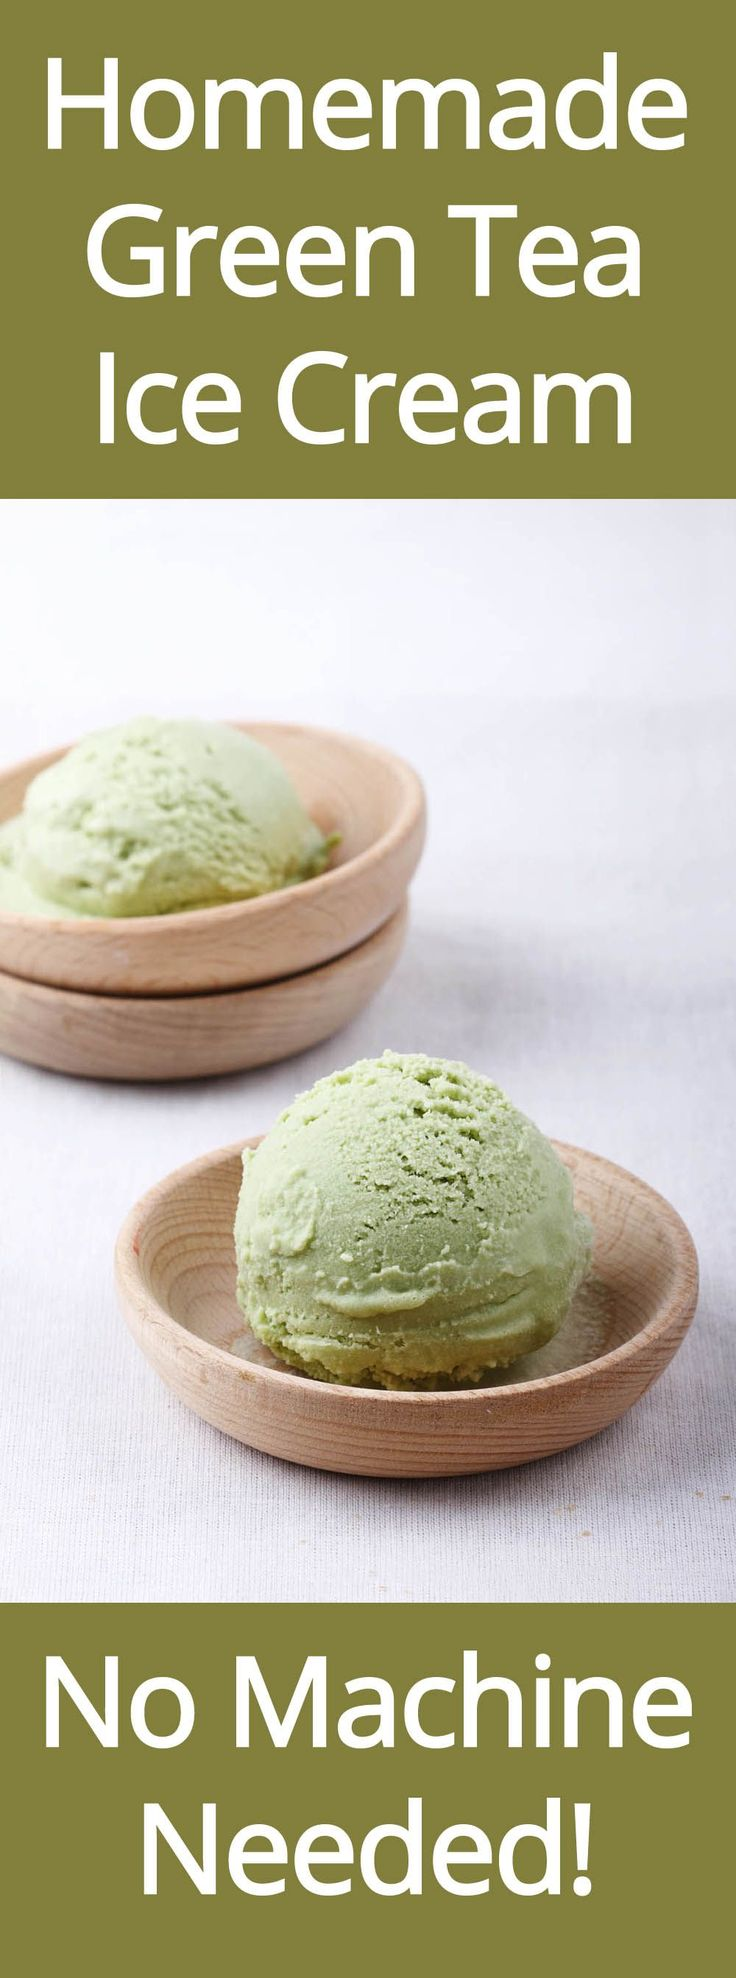 Homemade Green Tea (Matcha) Ice Cream - No Machine Needed! (from MelanieCooks.com)